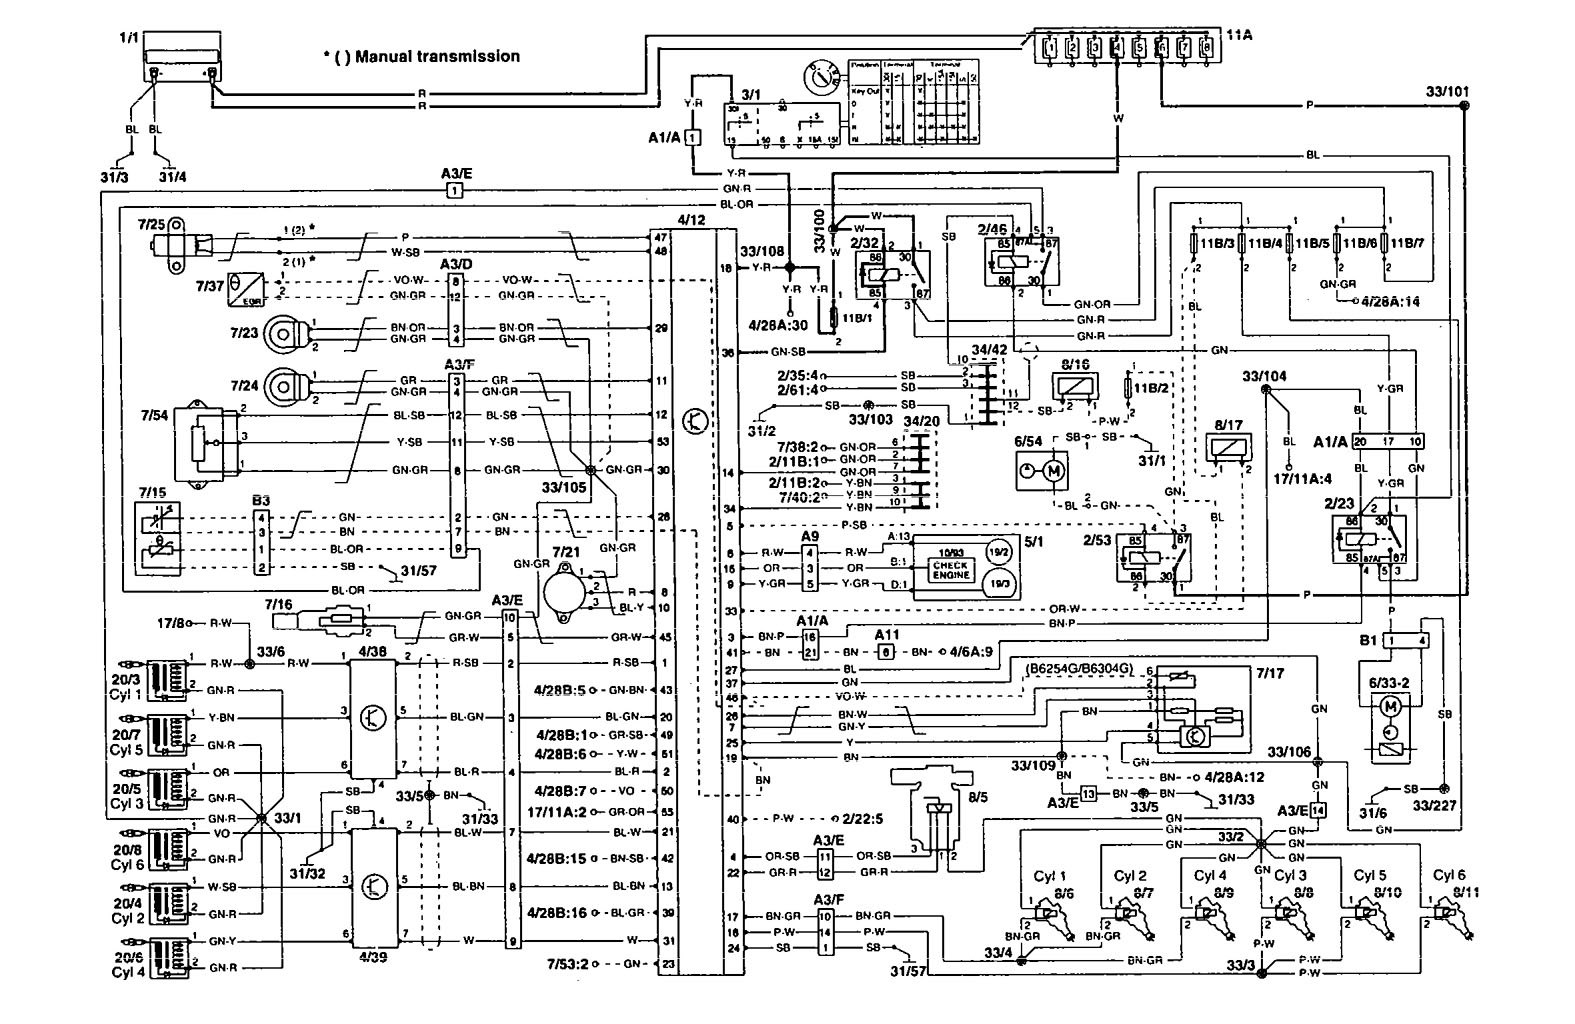 1993 volvo 240 stereo wiring diagram 4 wire o2 sensor toyota 1994 940 engine manual e books simple schematic diagram1994 960 data schema